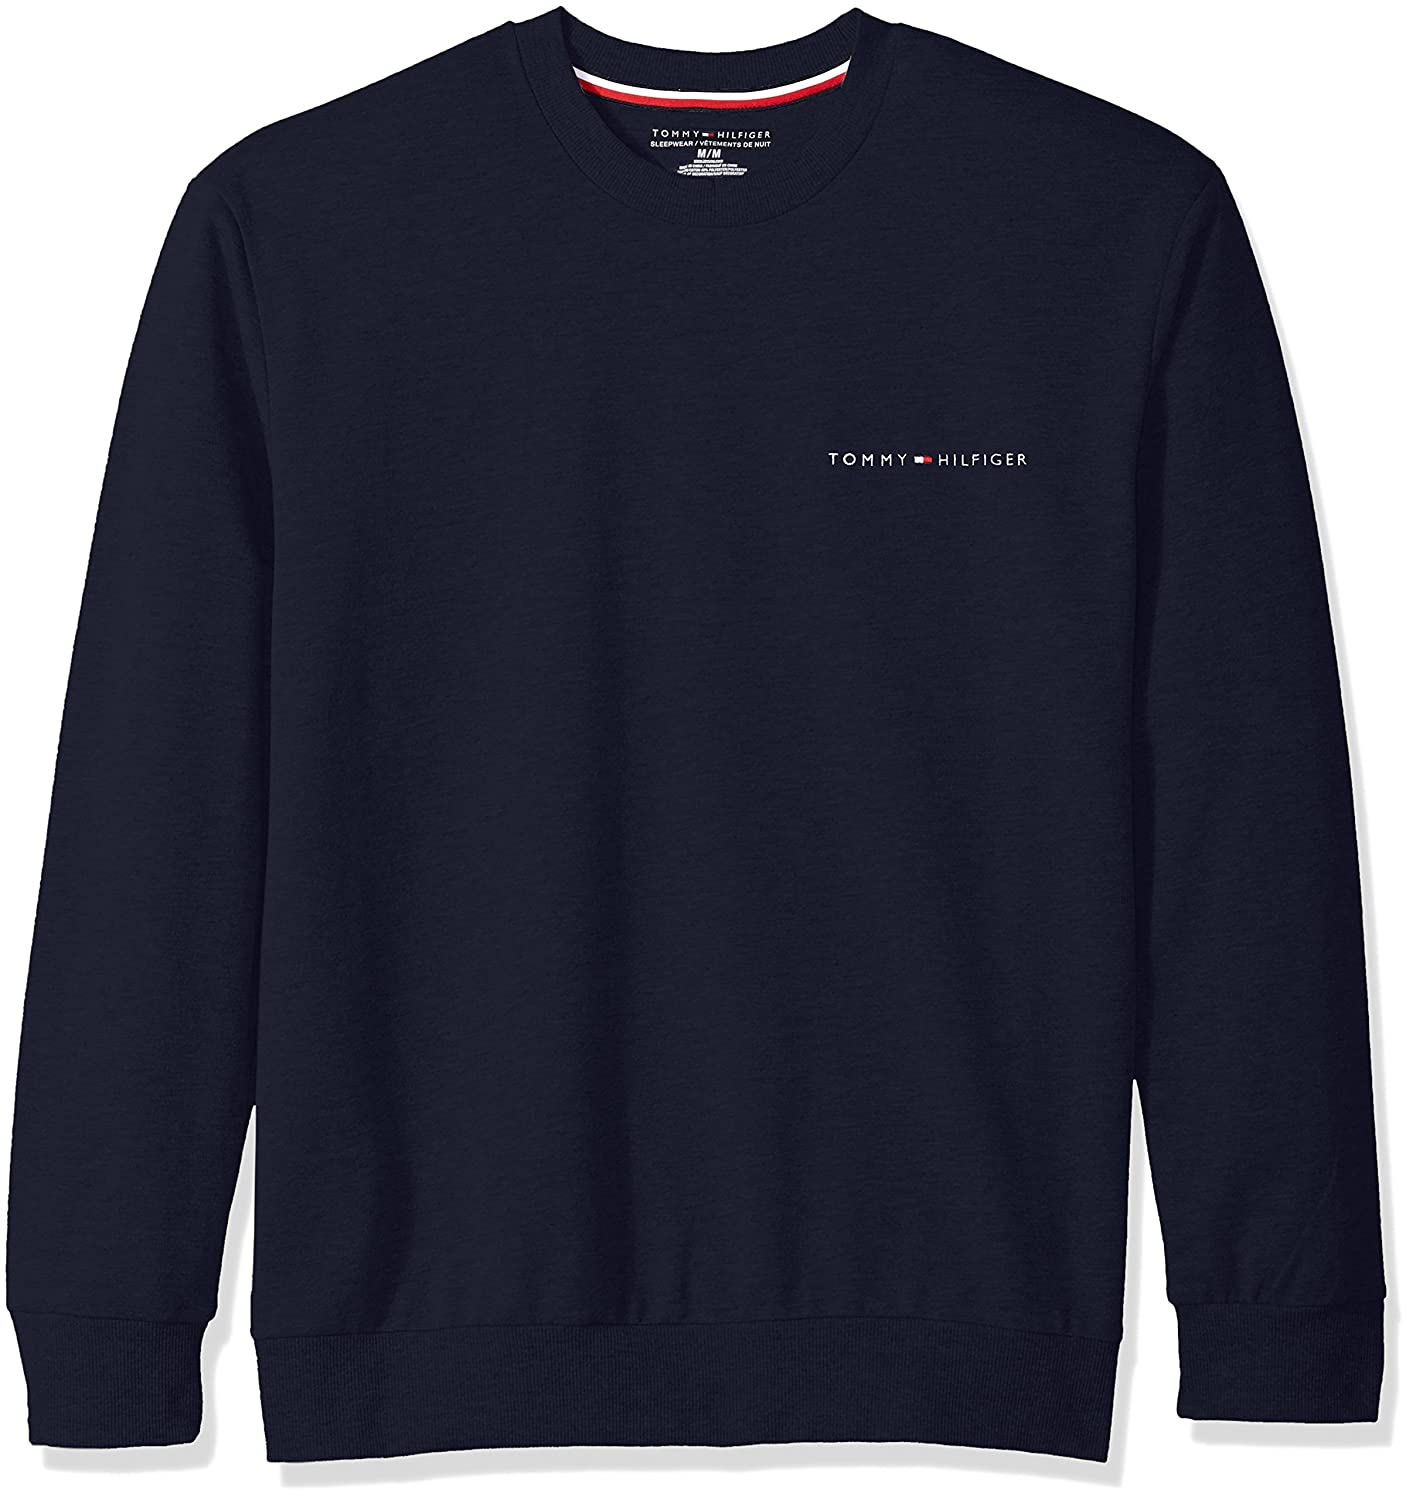 Tommy Hilfiger Men's Modern Essentials French Terry Sweatshirt by Tommy+Hilfiger